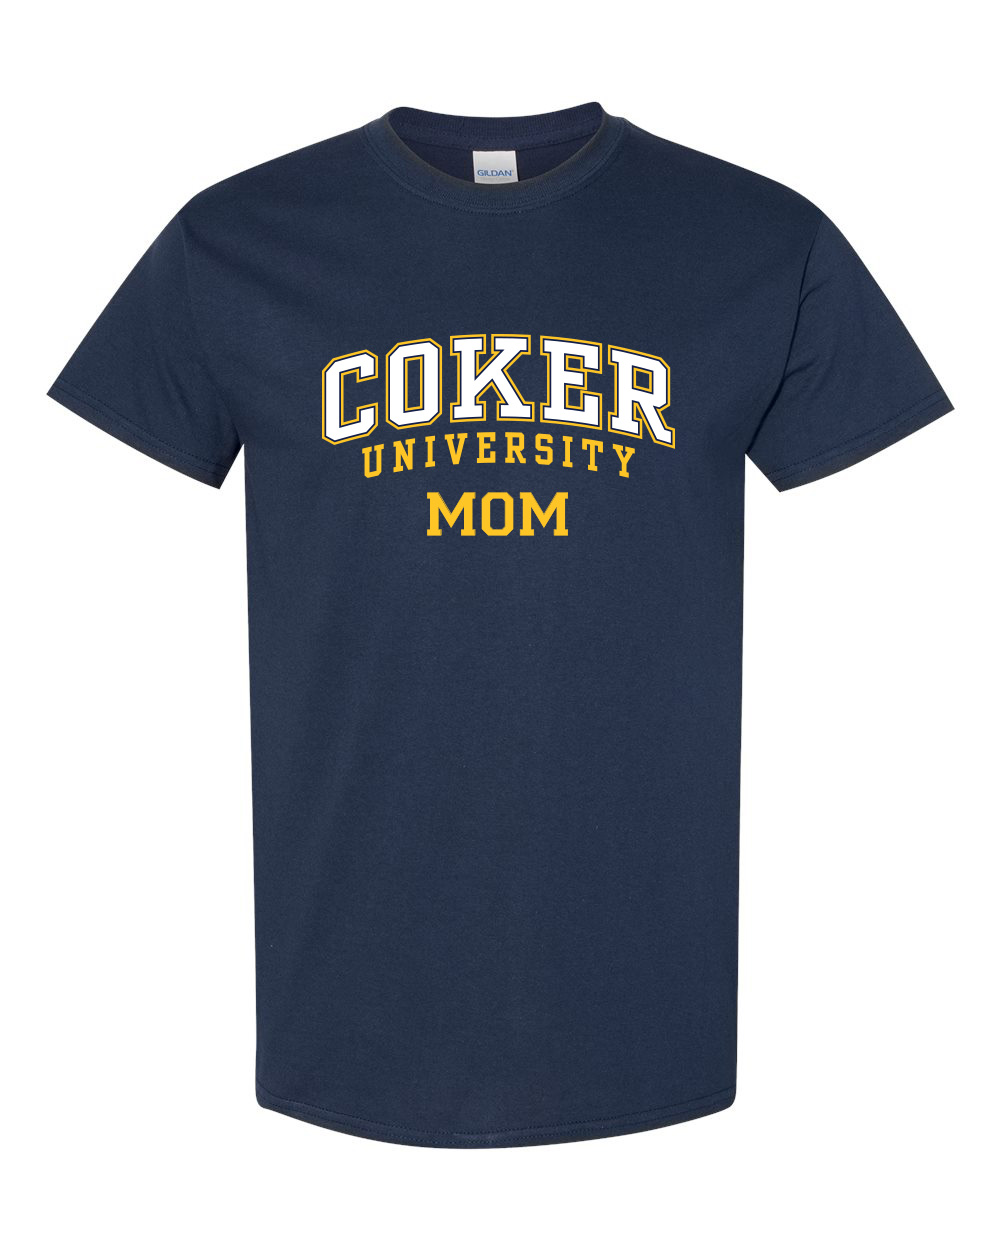 Image For Shirt Short Sleeve COKER UNIVERSITY MOM TEE